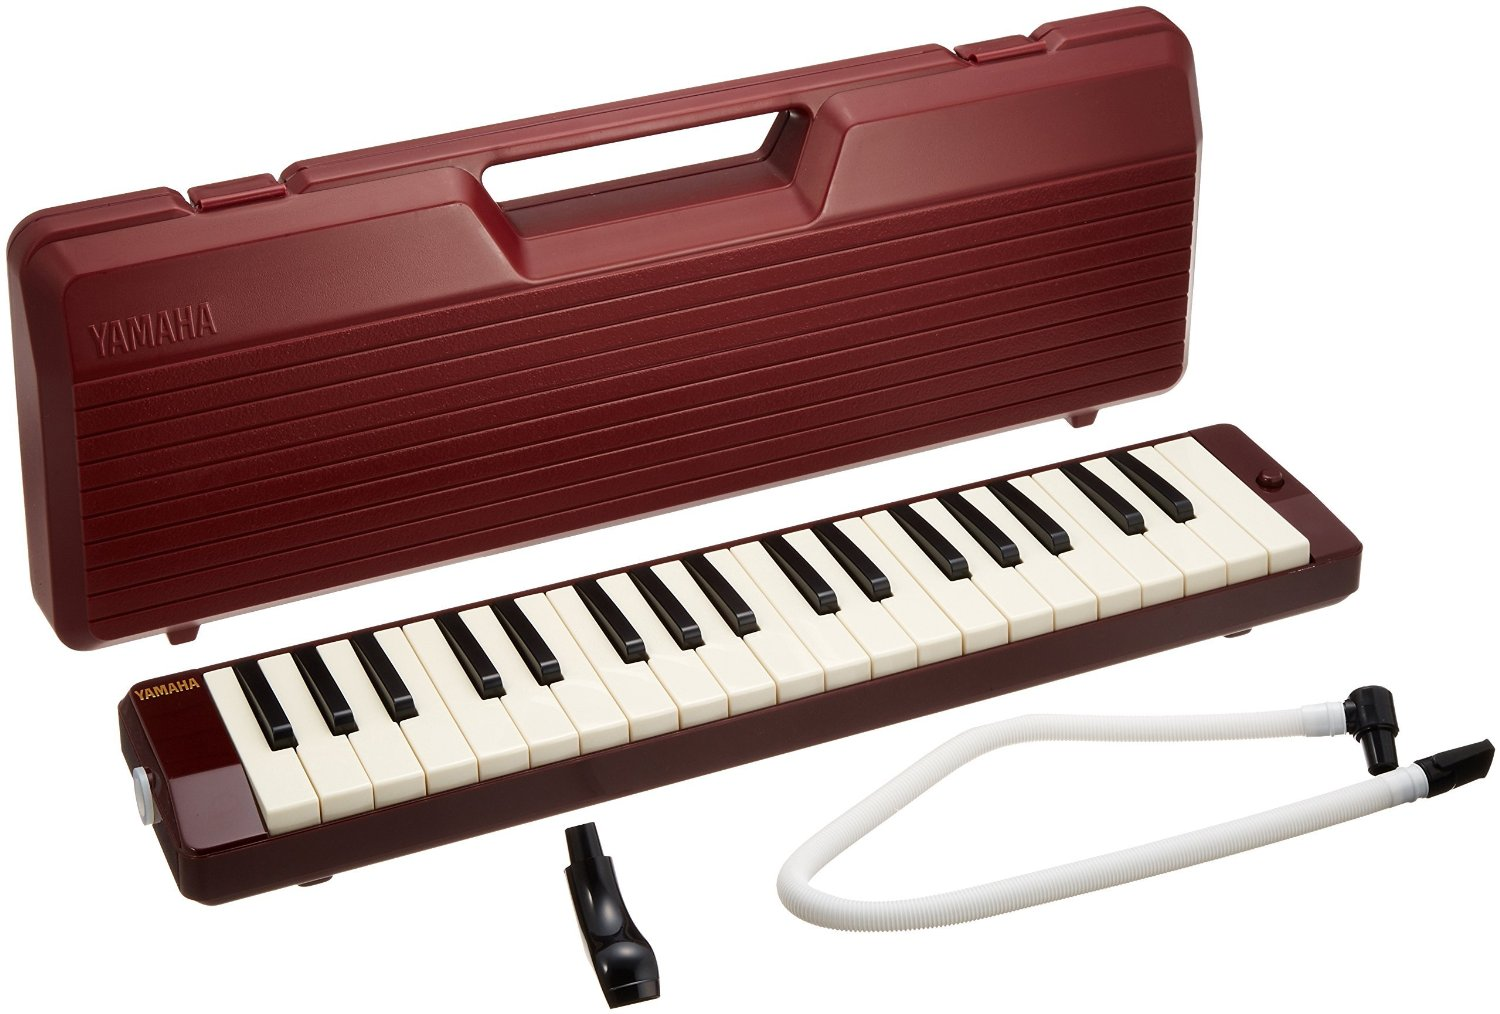 Yamaha p37d 37 note pianica melodica keyboard wind for Yamaha electronic wind instrument